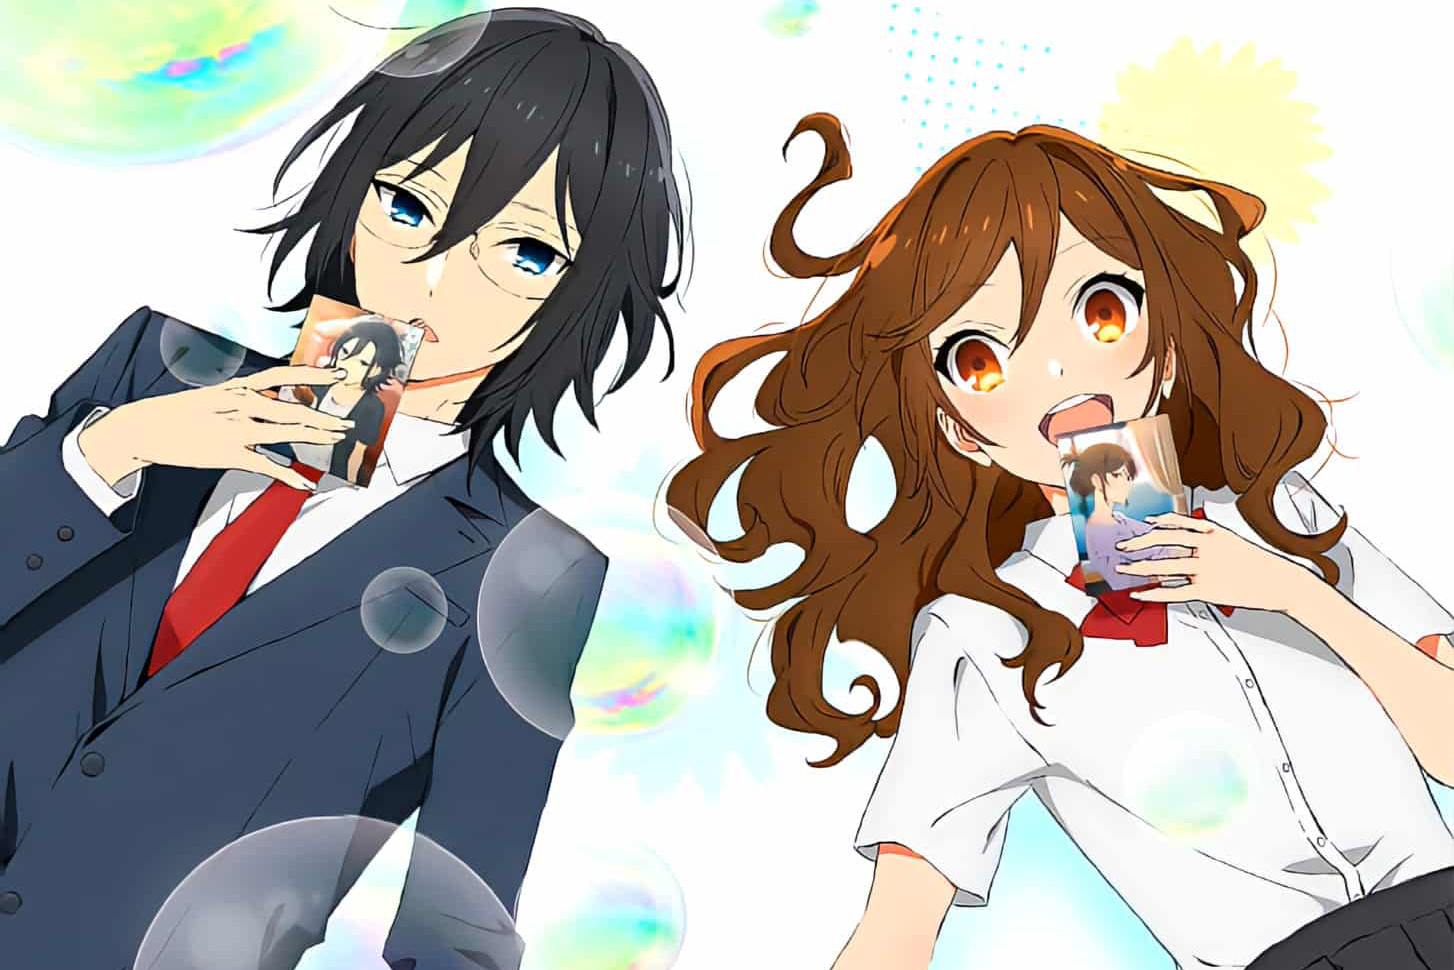 Most Anticipated Anime Coming Out in January 2021 - Horimiya